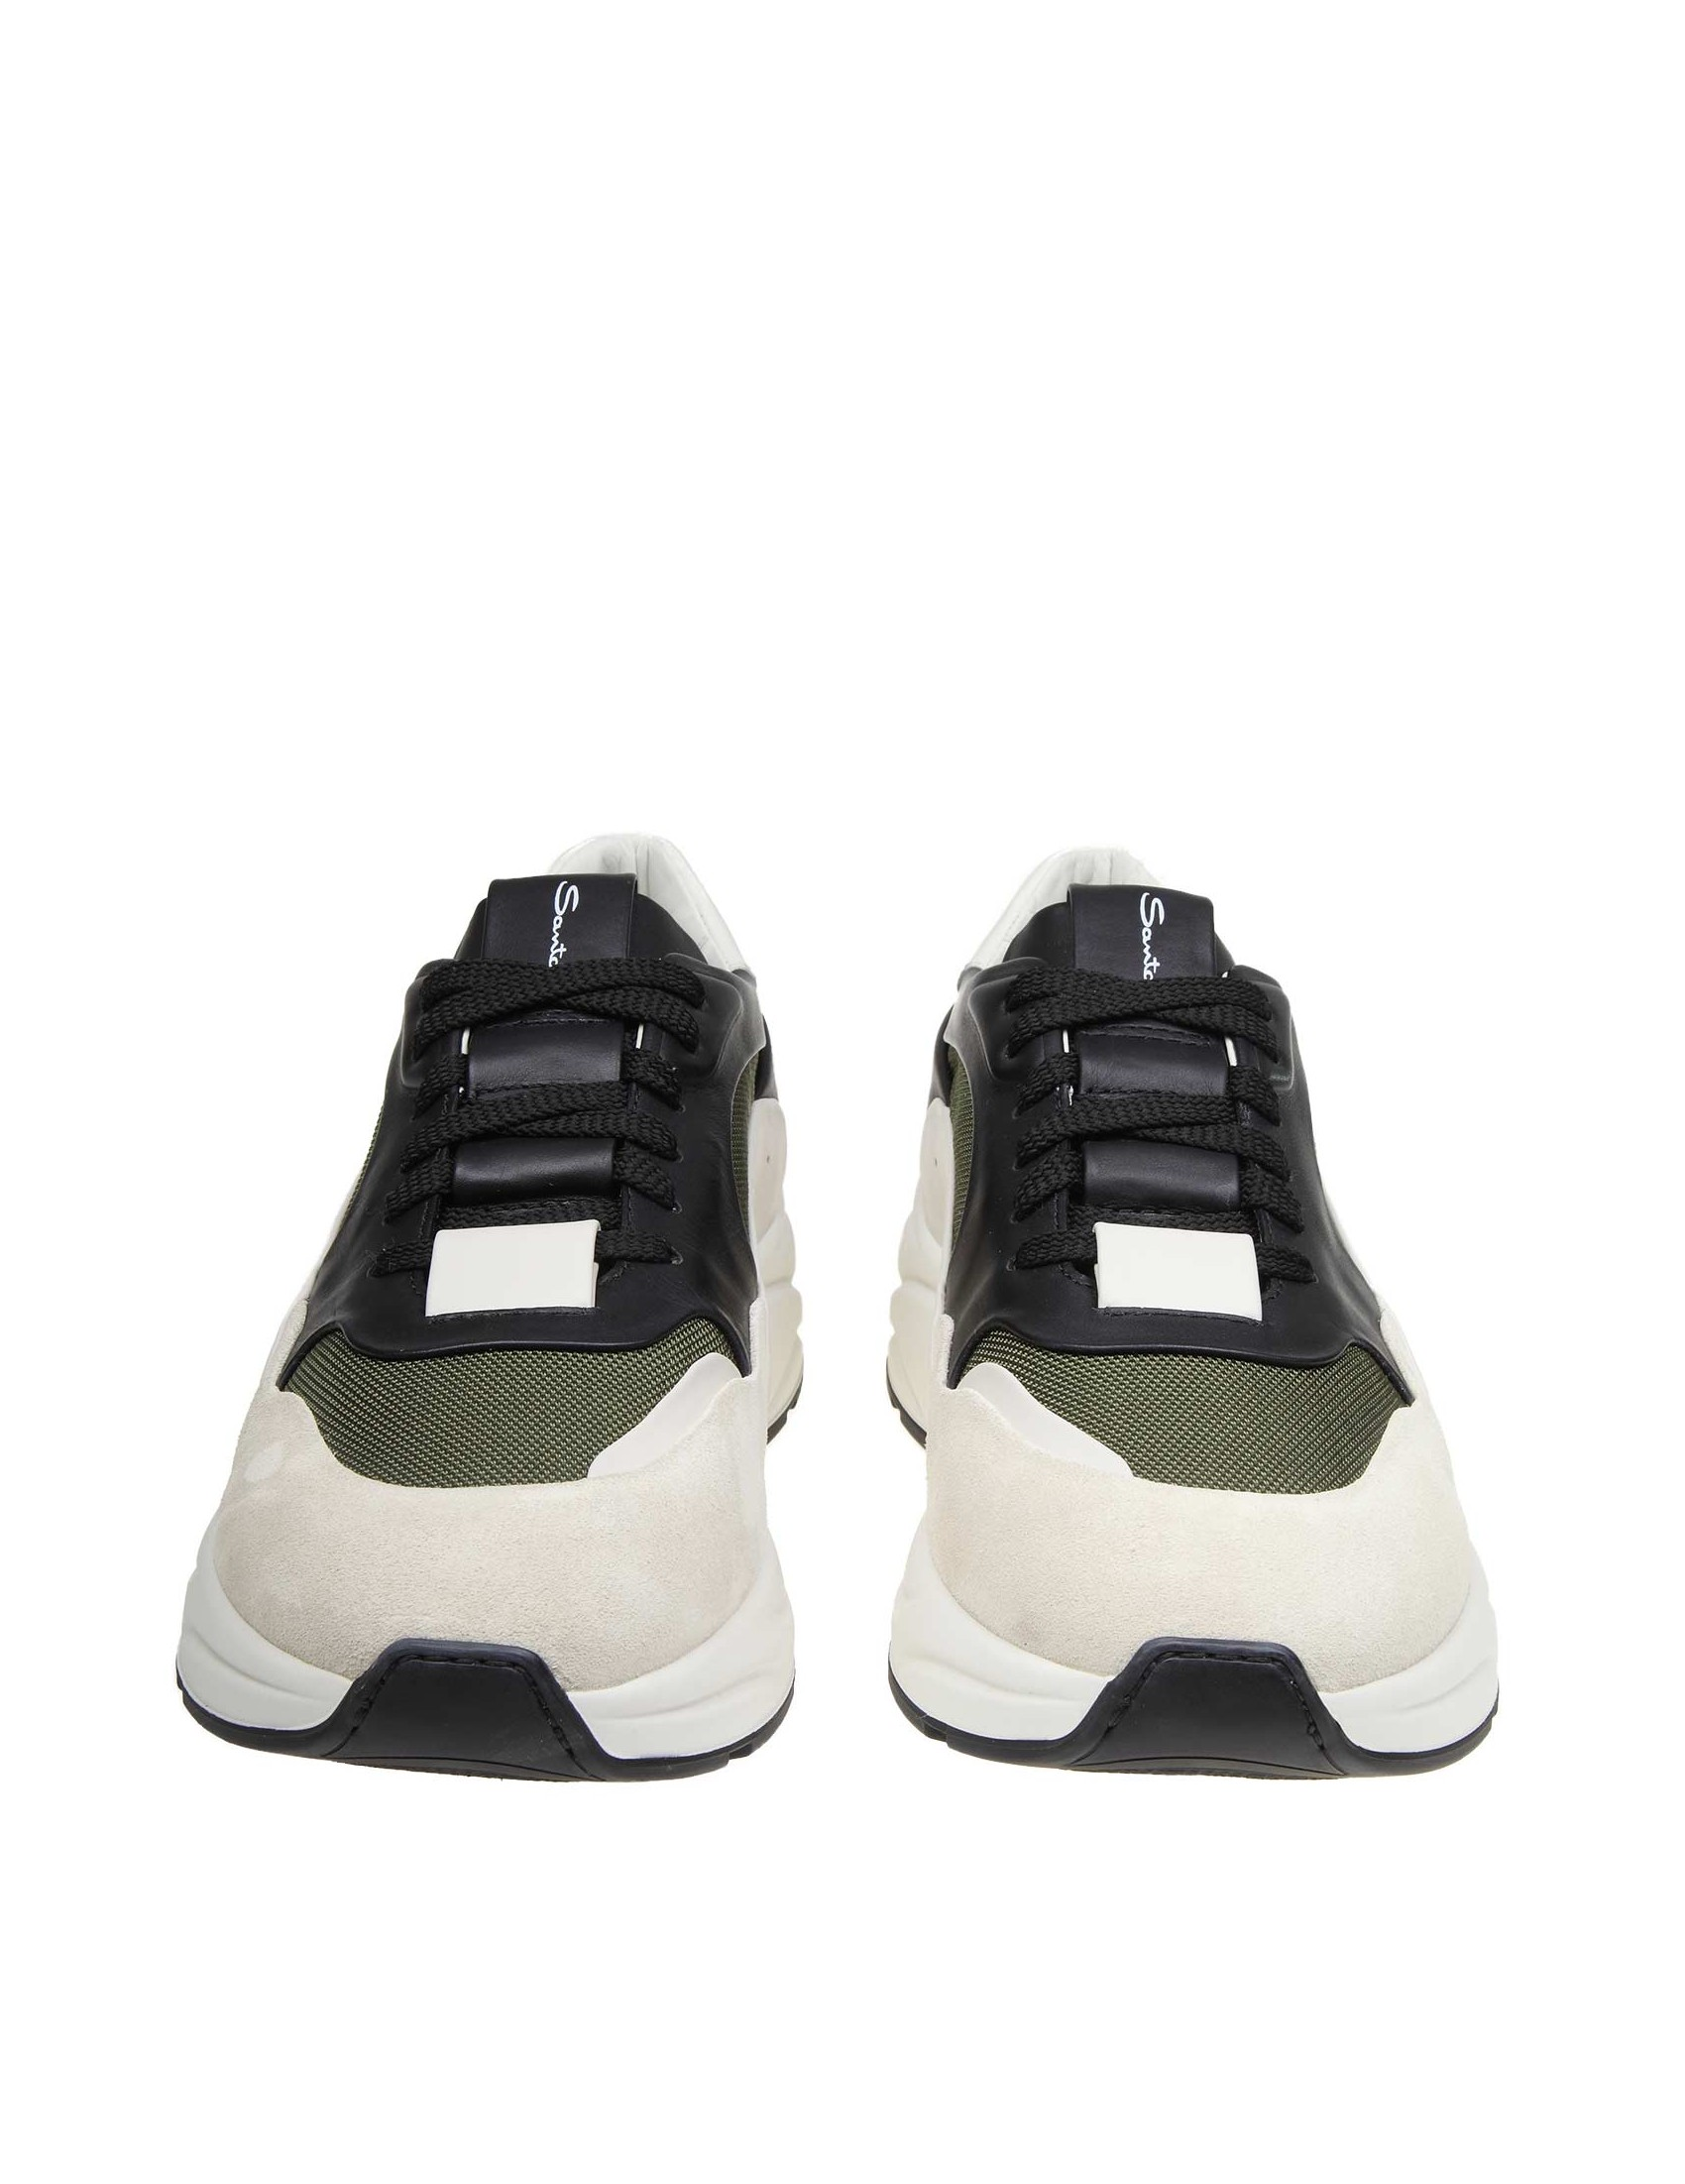 df14536193d ... SANTONI SNEAKERS IN FABRIC AND SUEDE. Reduced price. prev